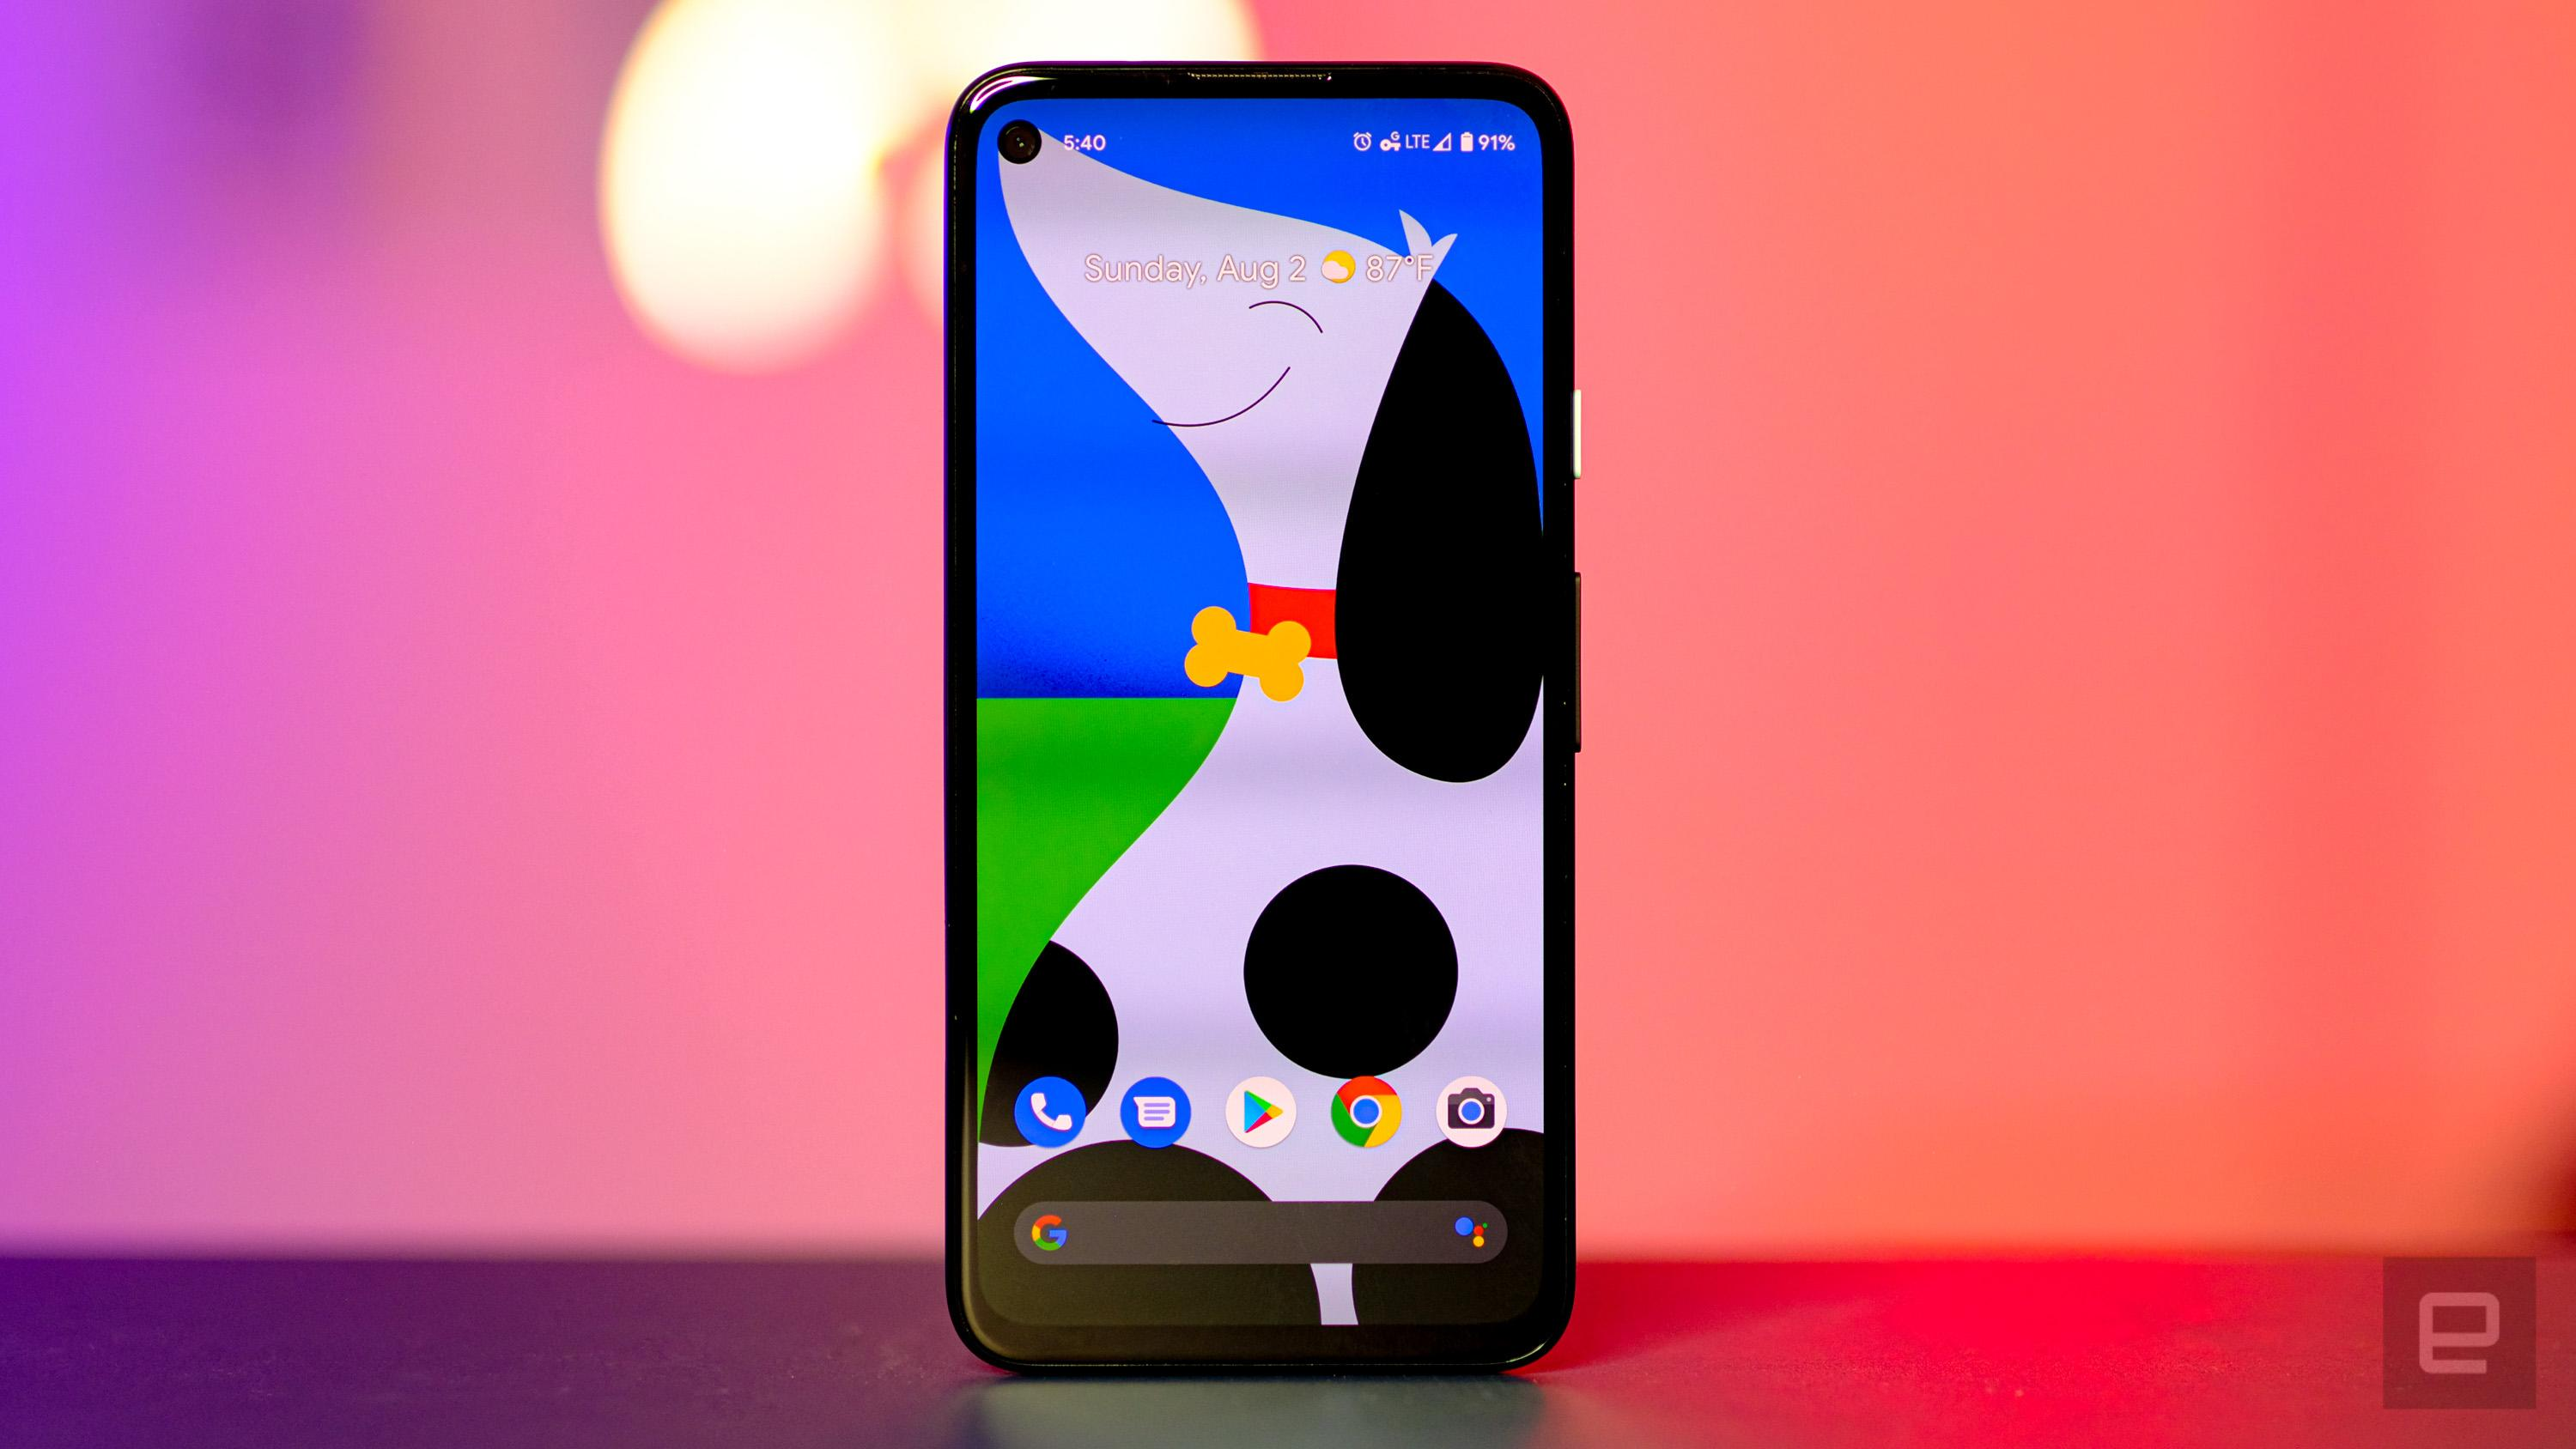 Google's long-awaited Pixel 4a goes on sale August 20th for $350 – Yahoo Finance Australia